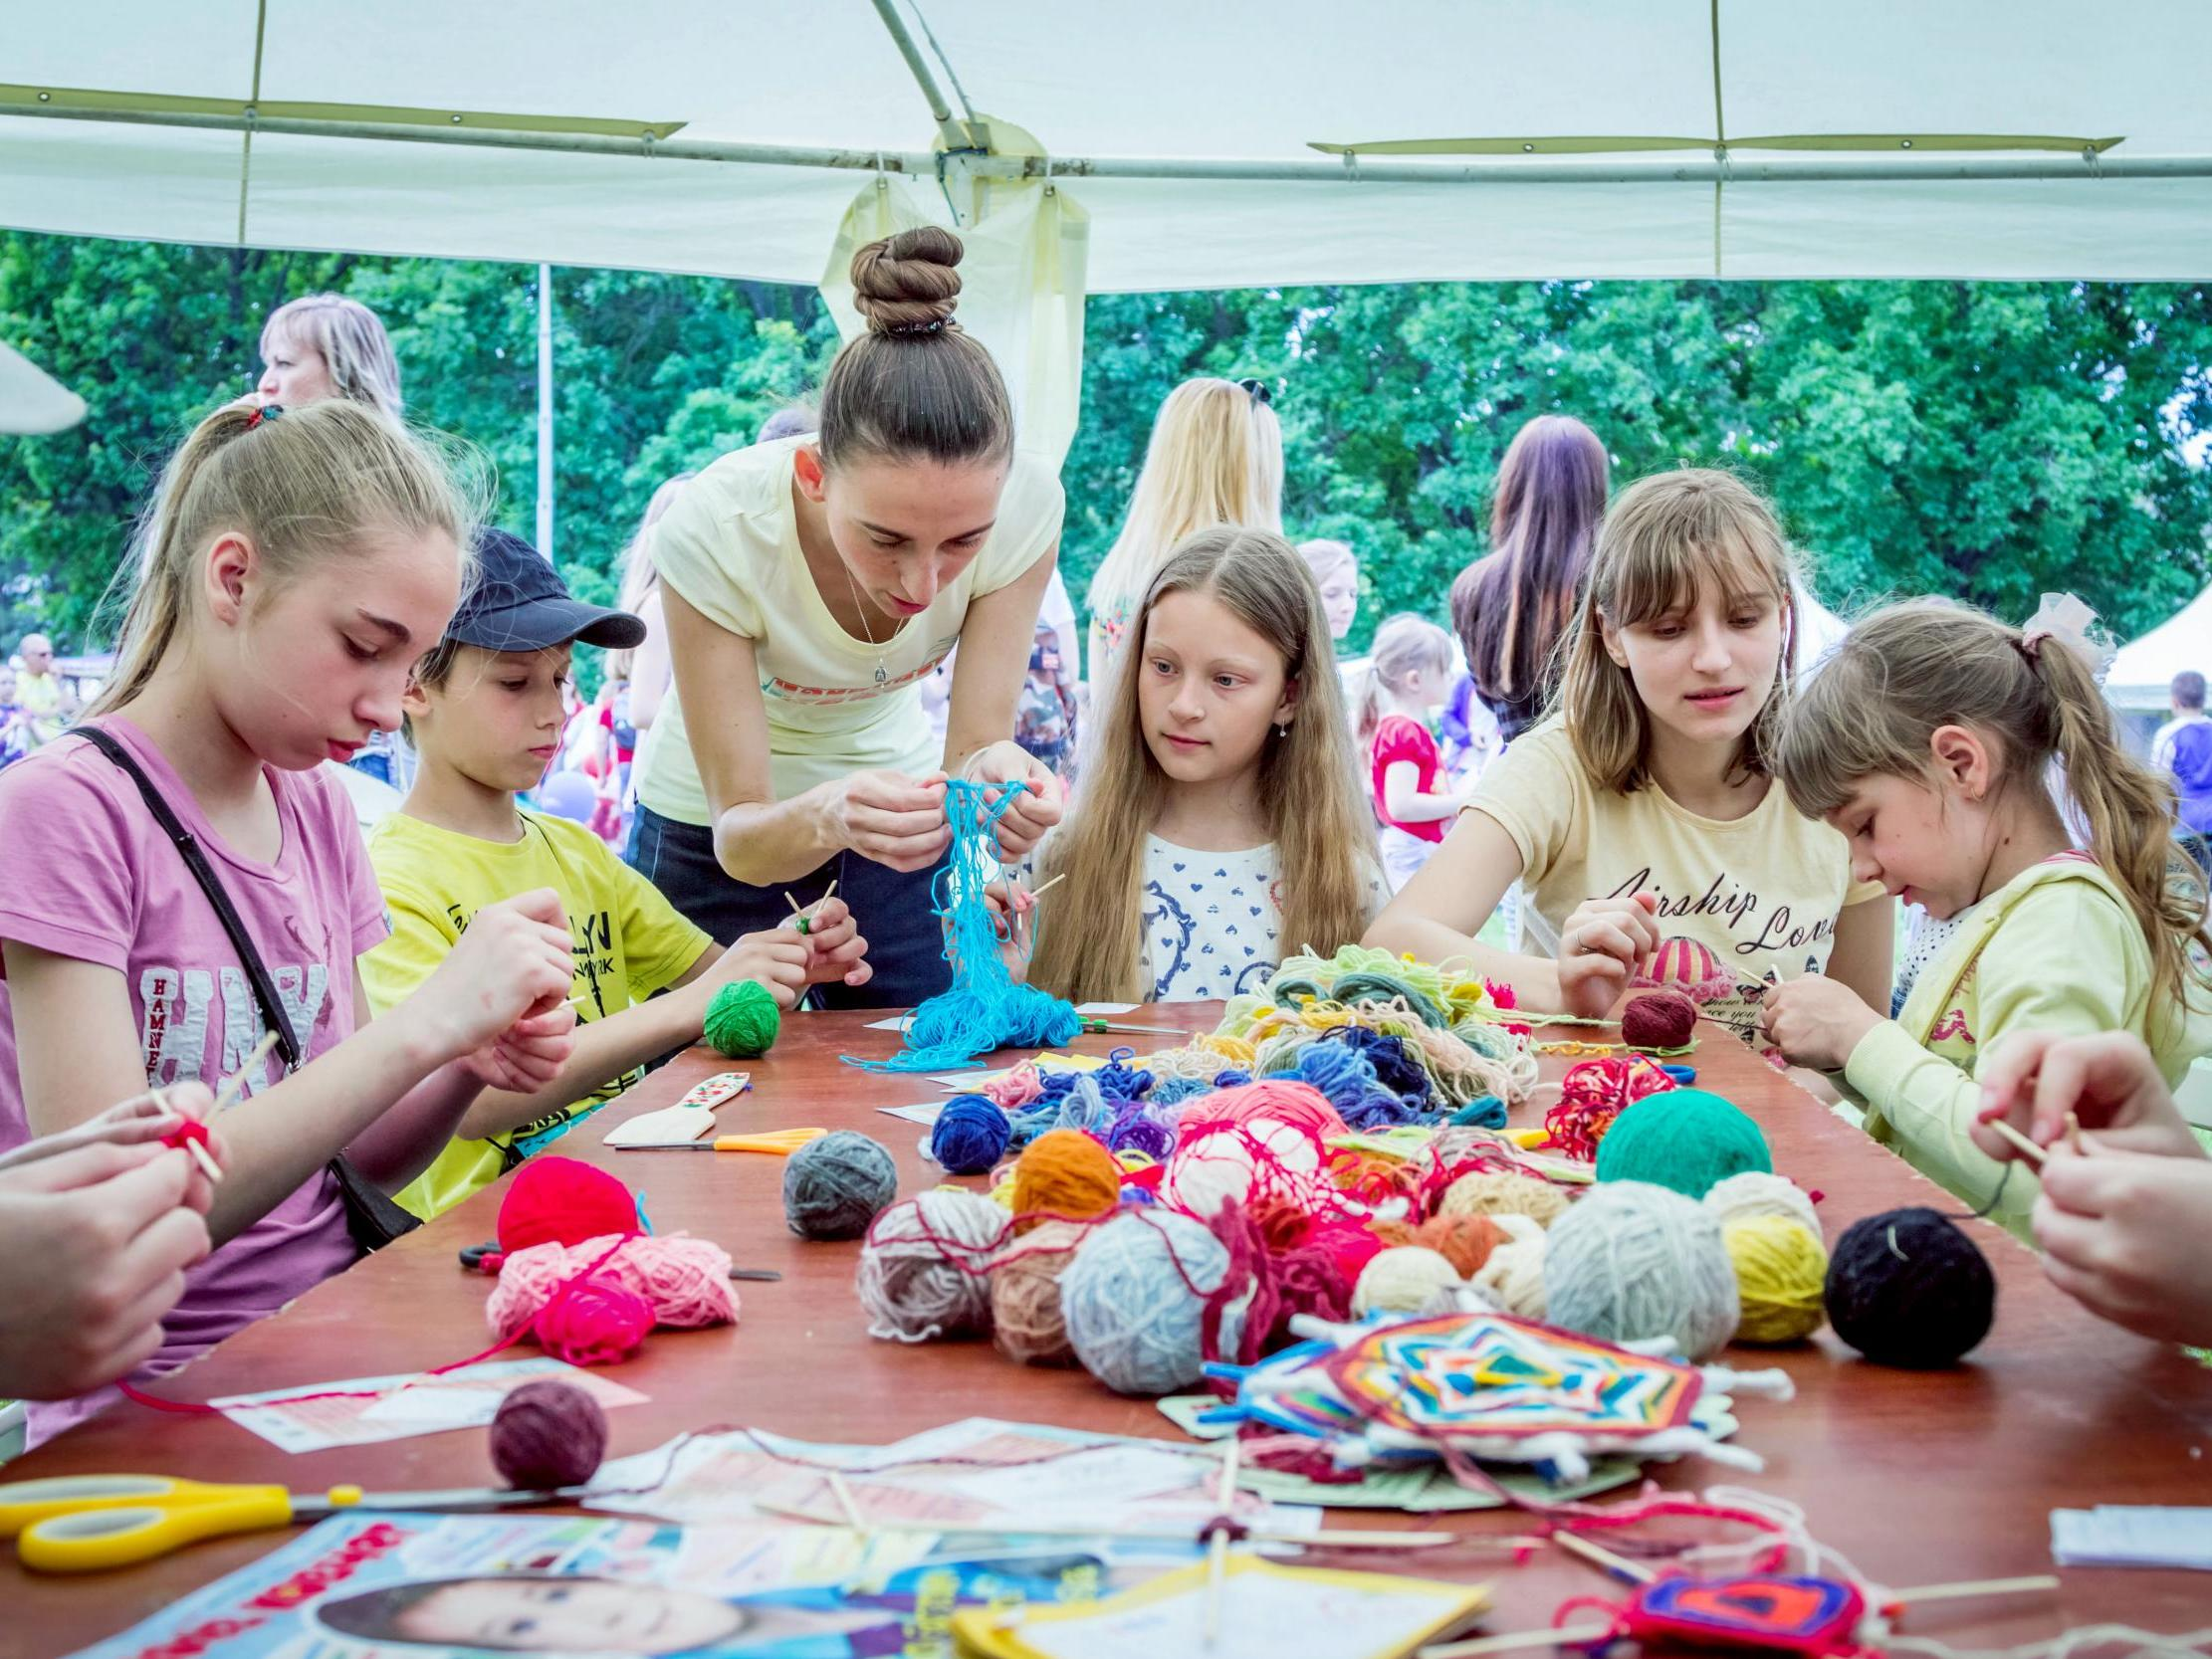 Uk Children Create 2 000 Arts And Crafts Pieces For Parents Before Turning 12 Poll Claims The Independent The Independent